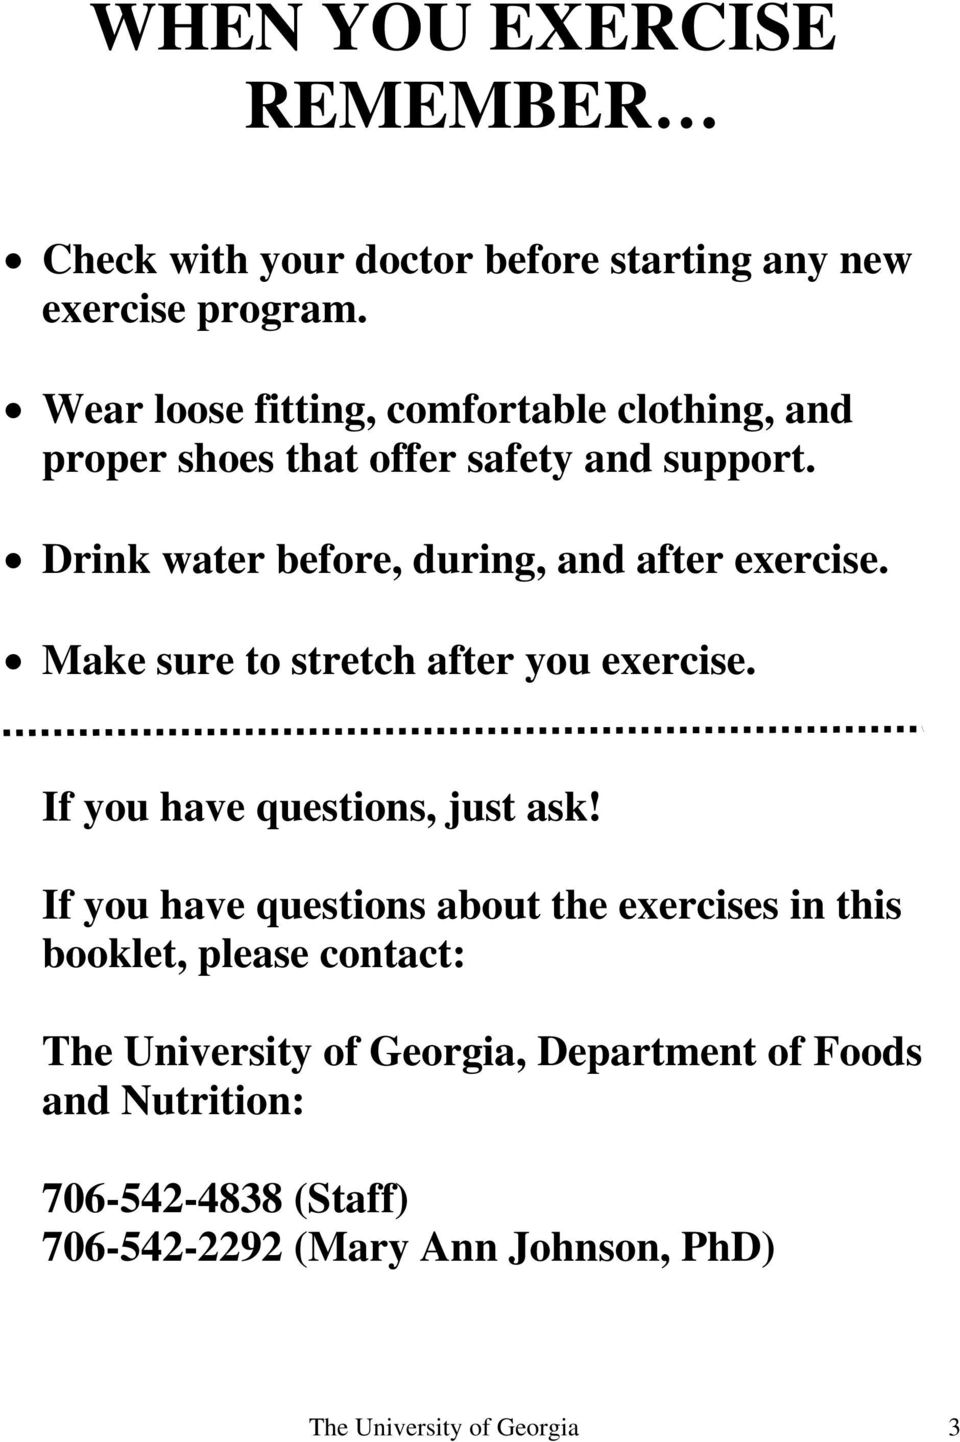 Drink water before, during, and after exercise. Make sure to stretch after you exercise. If you have questions, just ask!